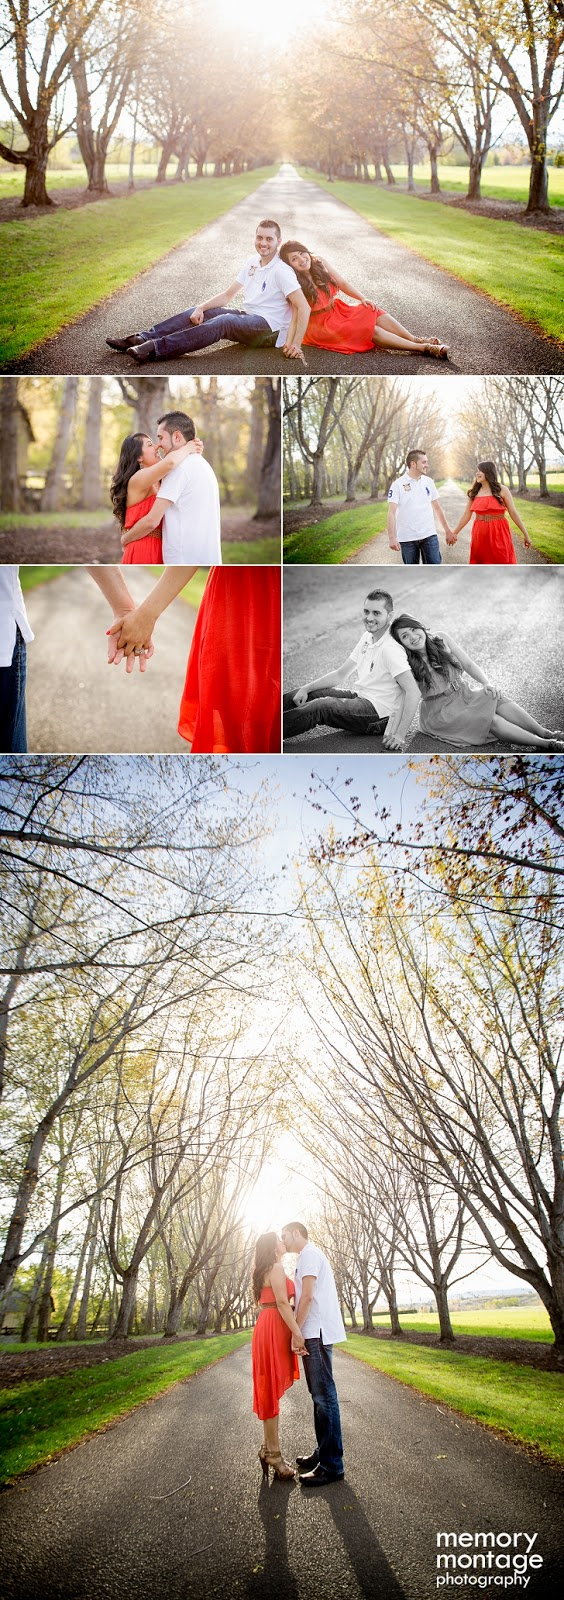 Engagement Session, Yakima Photographers - Memory Montage Photography 01